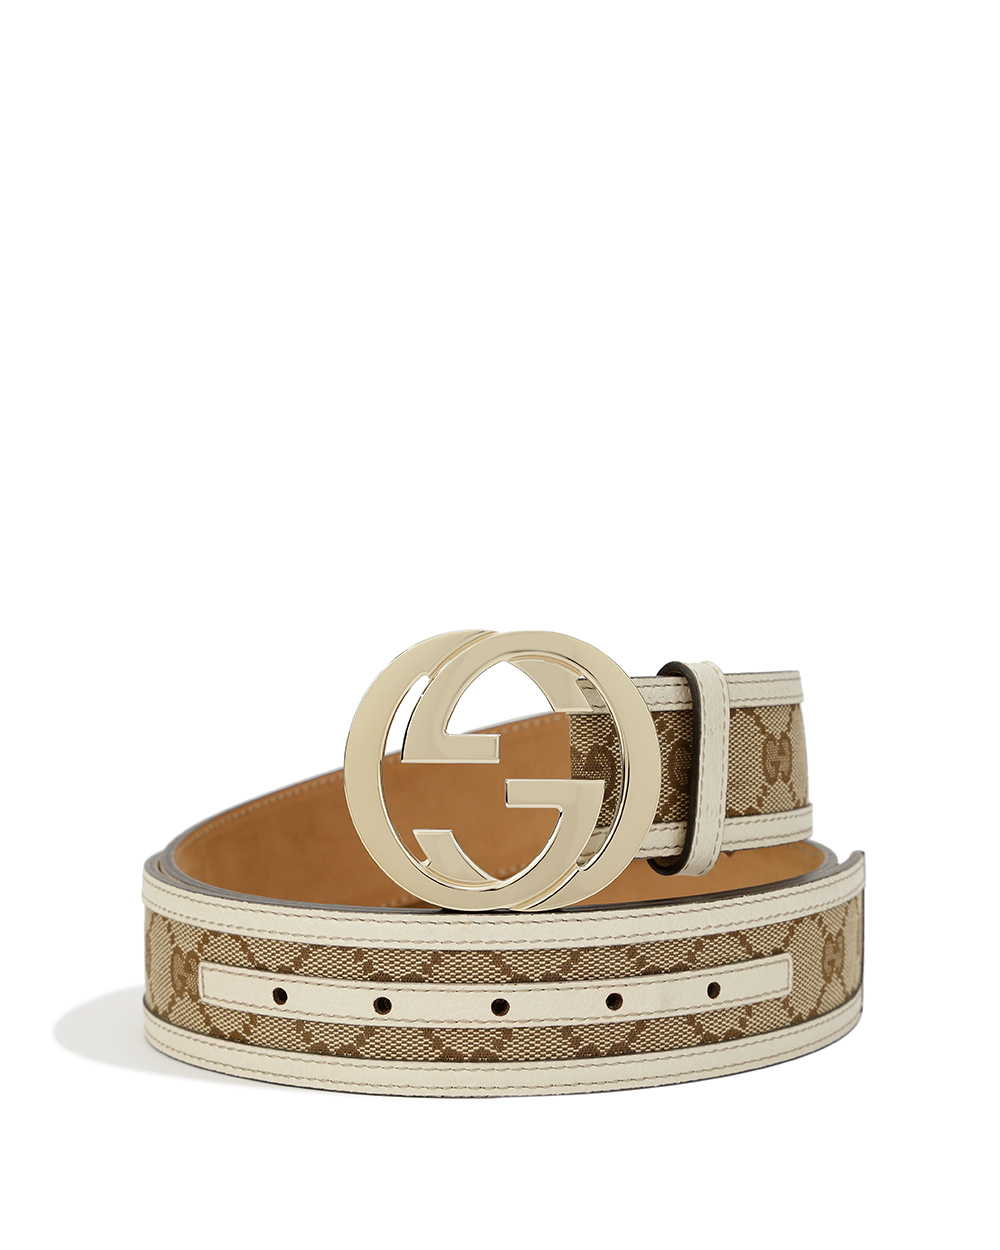 Double G Buckle Canvas Belt